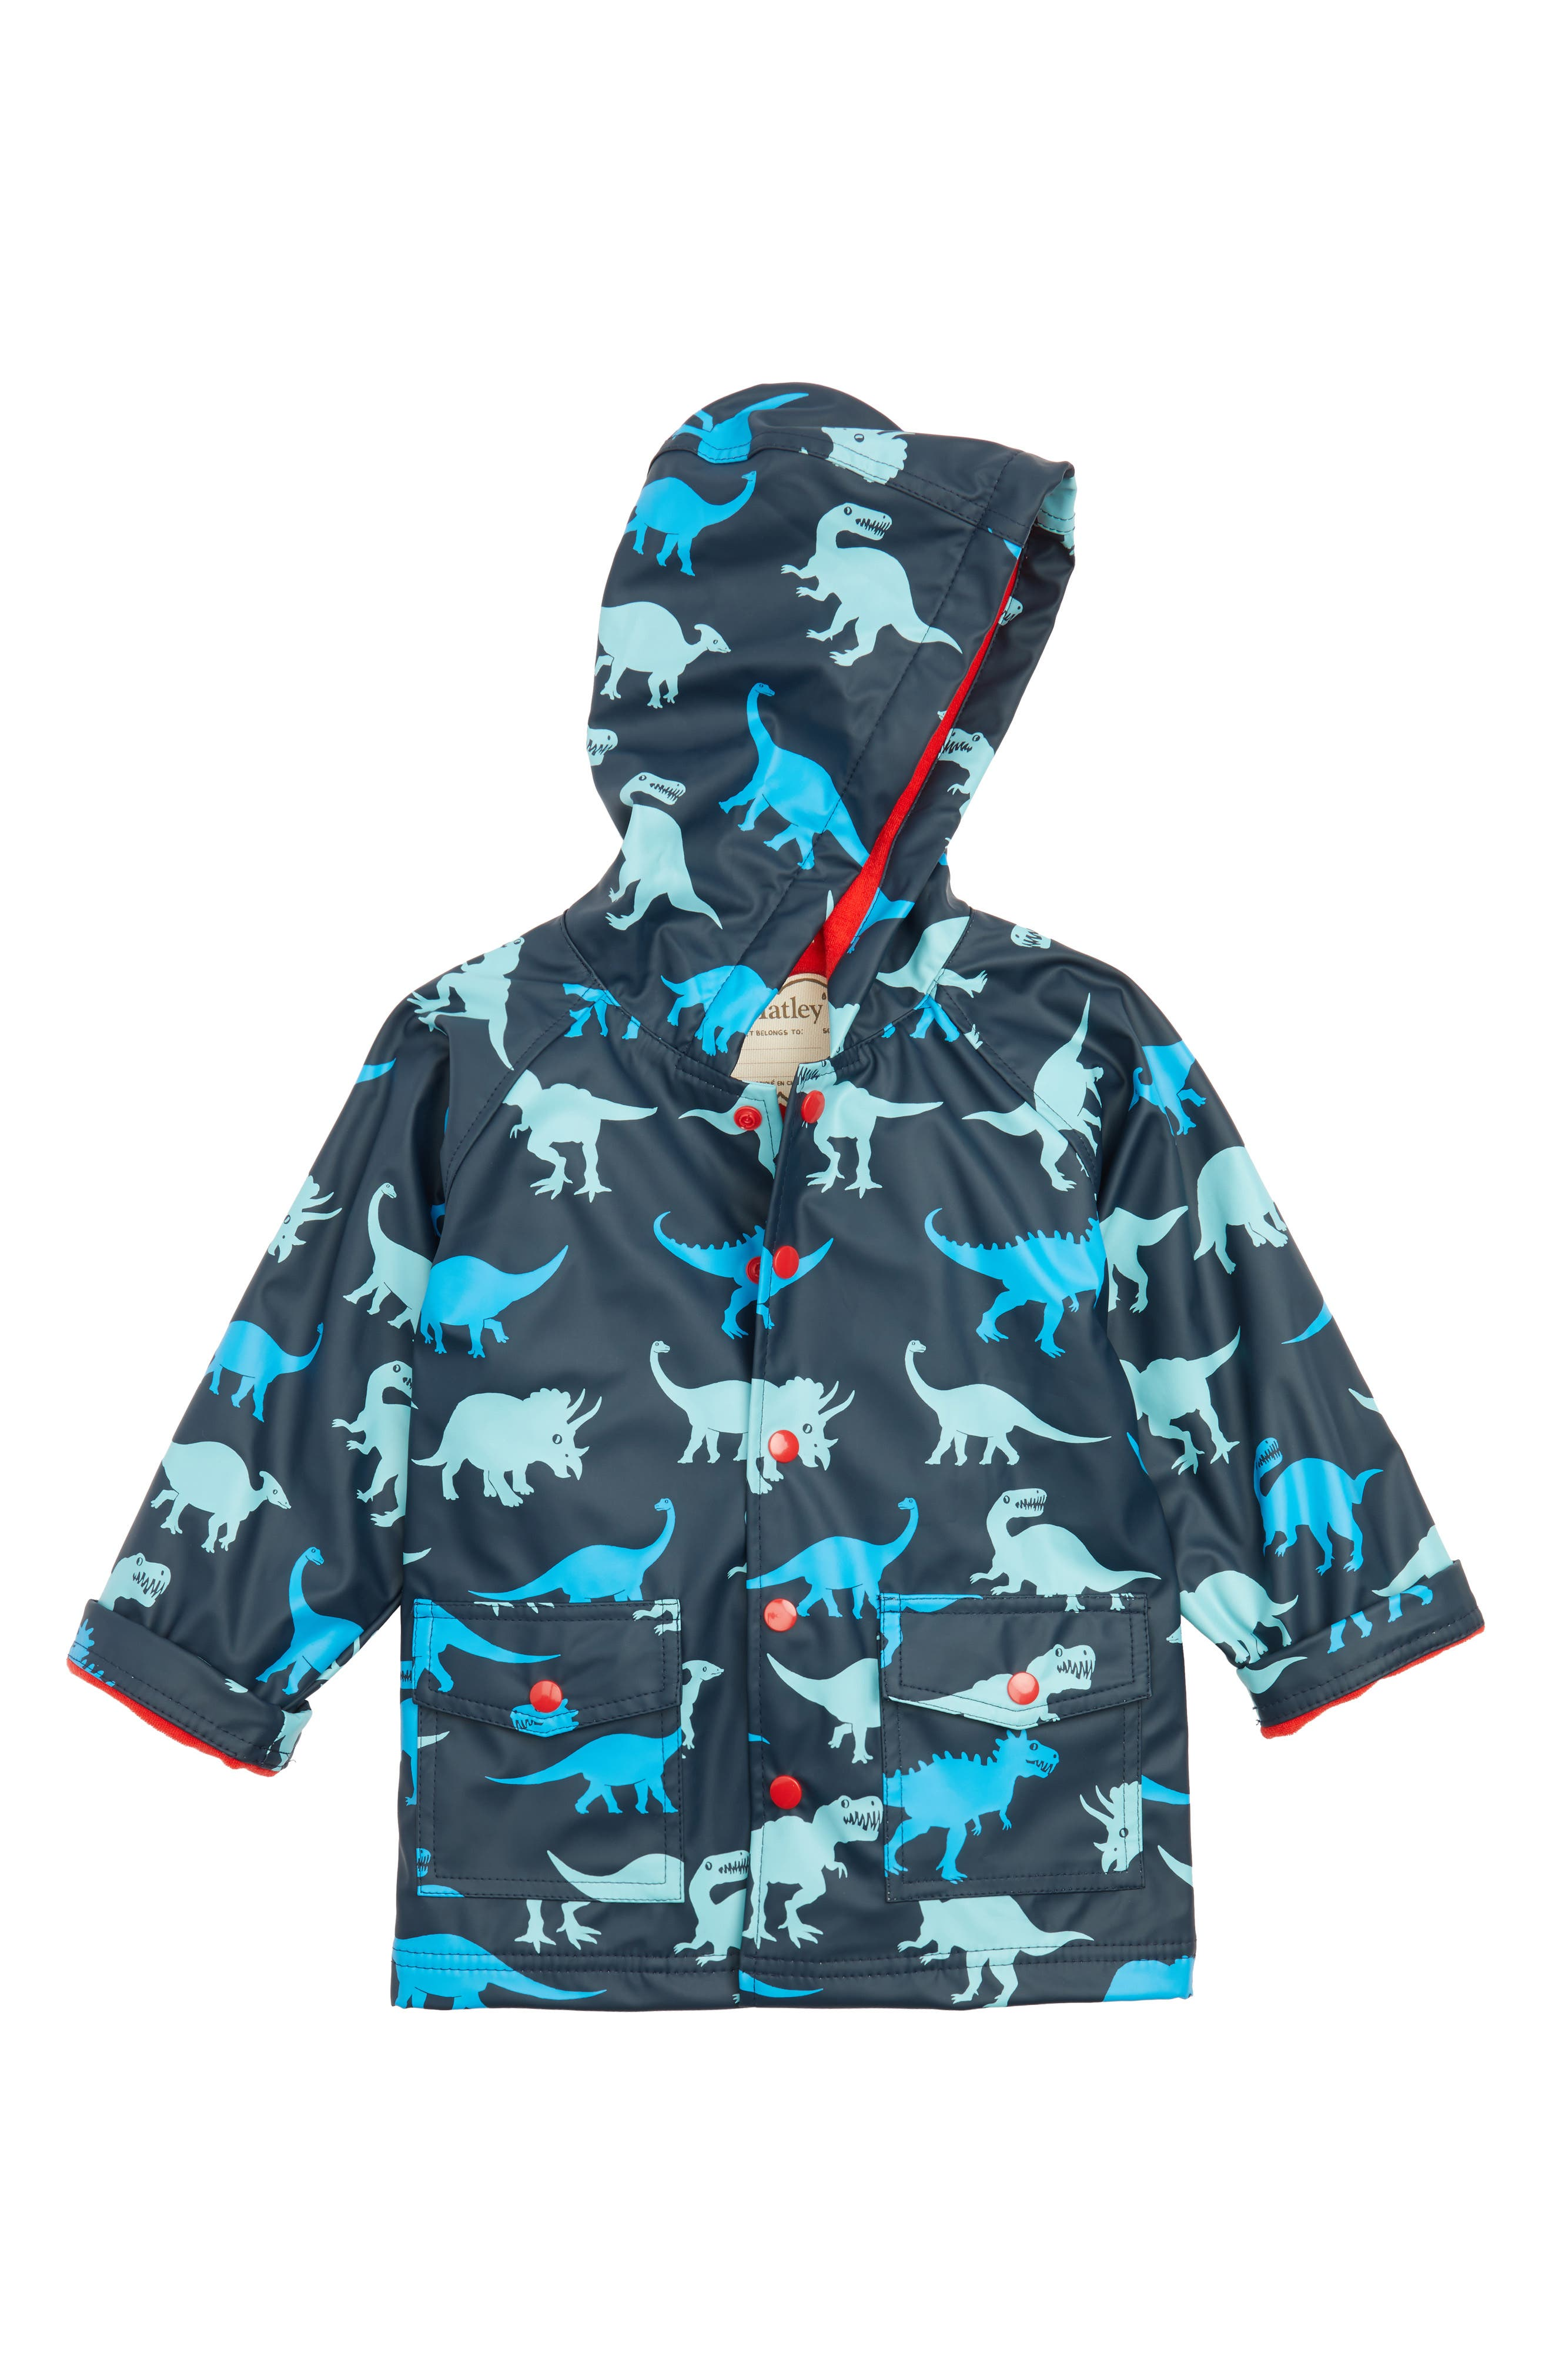 Alternate Image 1 Selected - Hatley Dino Shadows Print Raincoat (Toddler Boys, Little Boys and Big Boys)